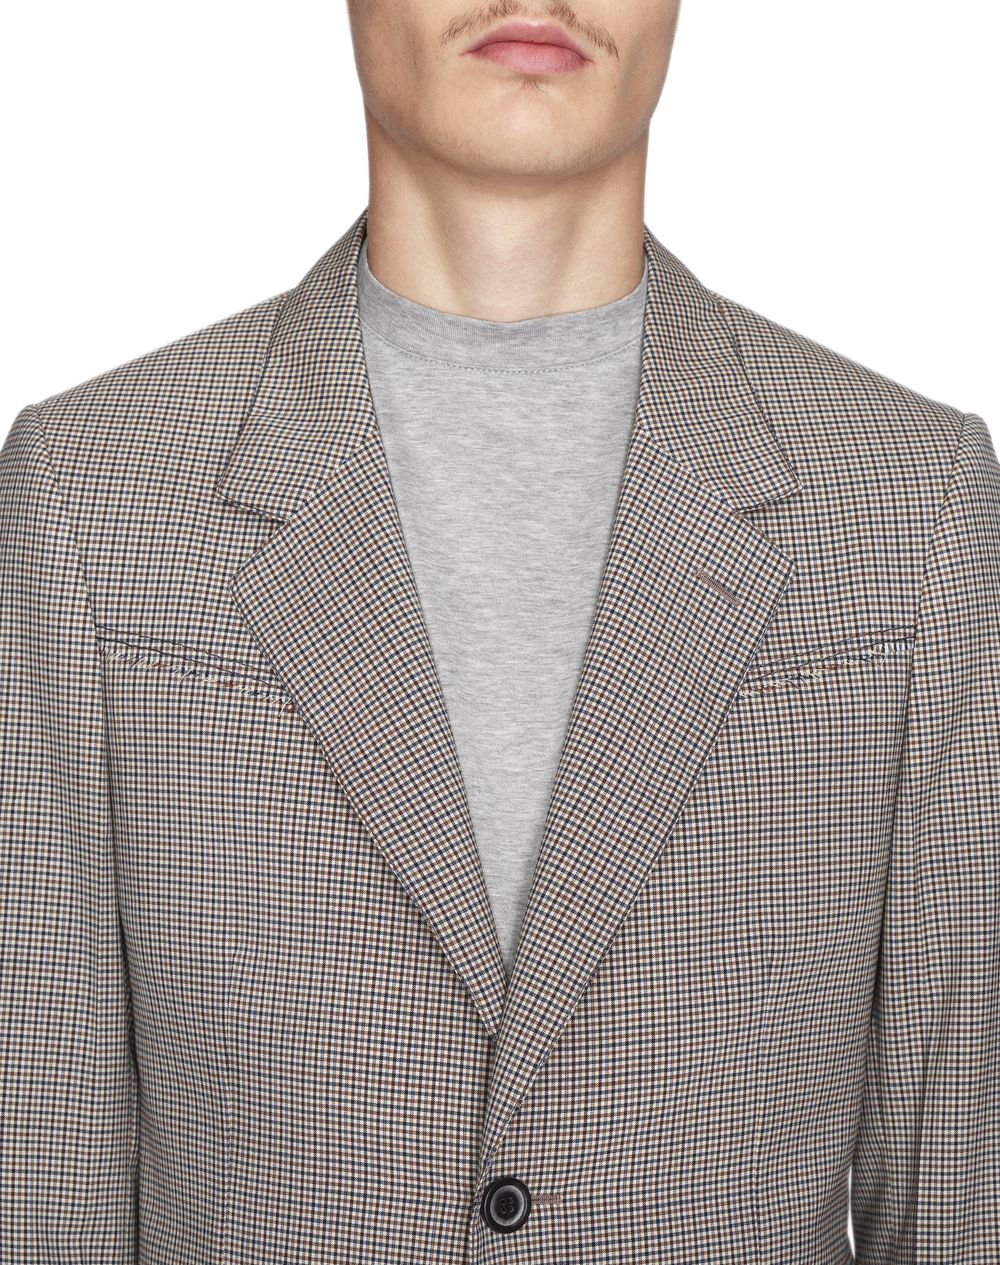 MULTICOLORED CHECKERED JACKET - Lanvin